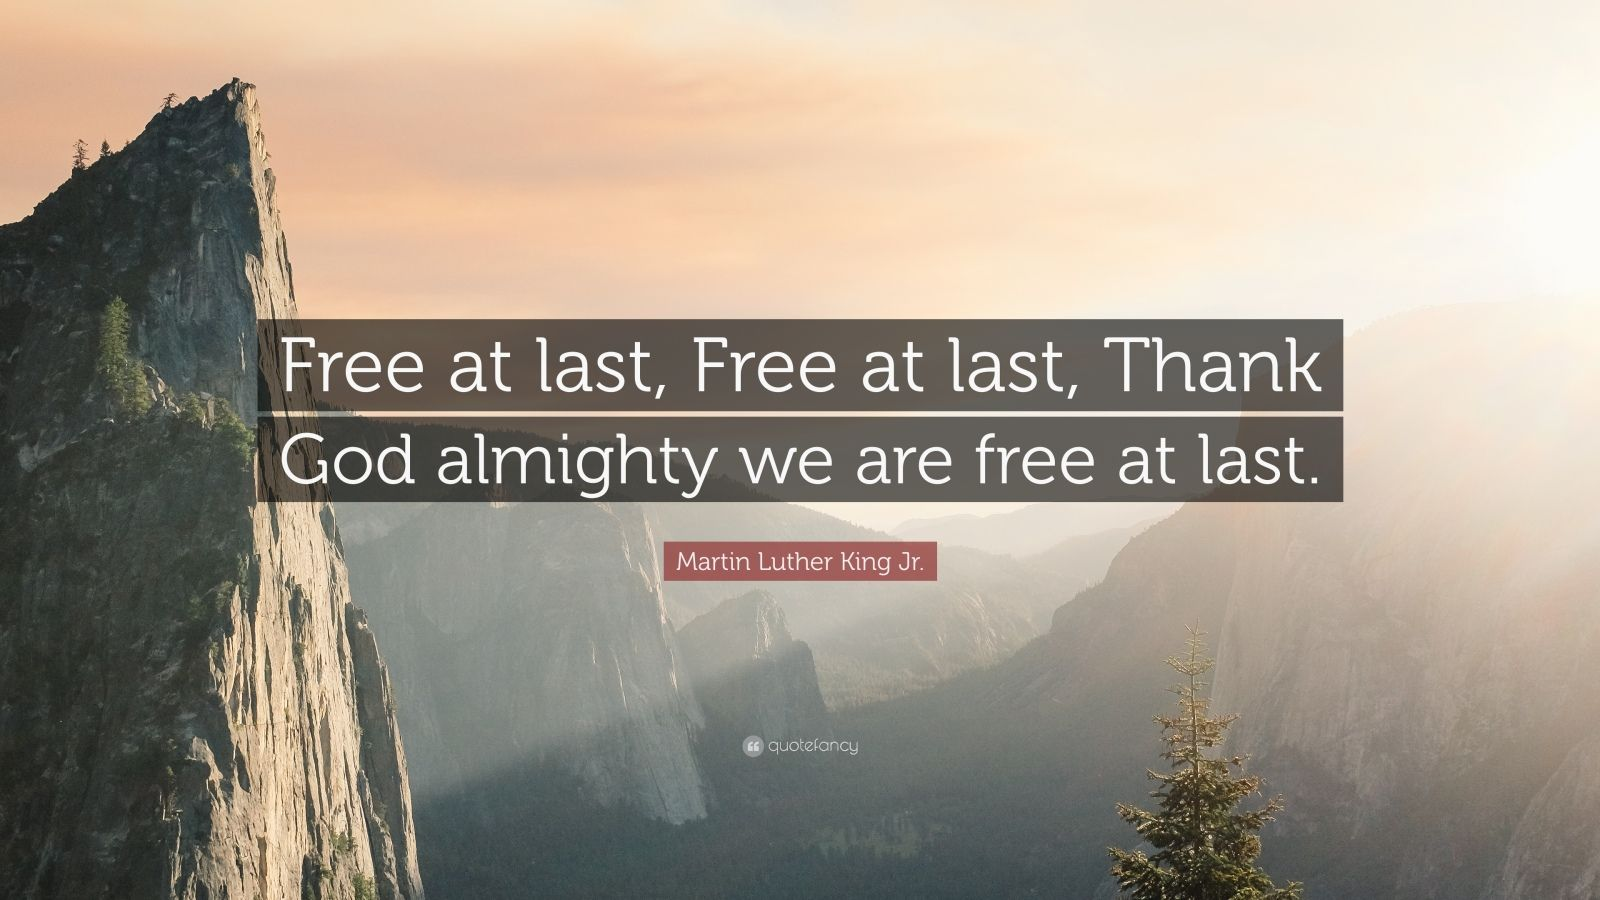 """Martin Luther King Jr. Quote: """"Free at last, Free at last, Thank God almighty we are free at last."""""""